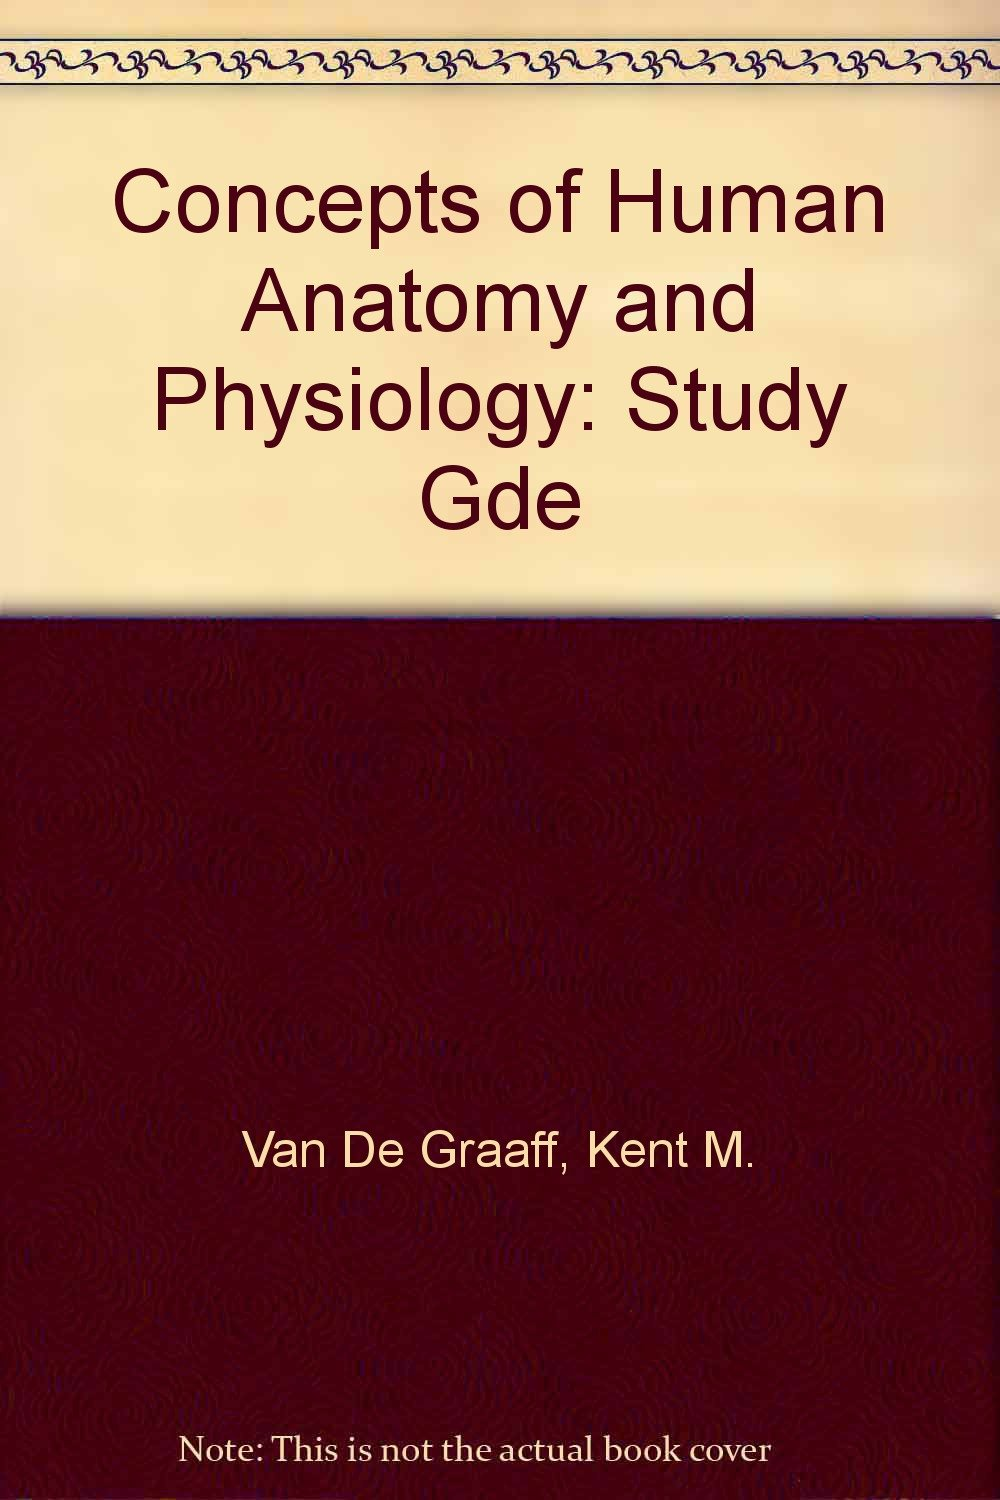 Concepts Of Human Anatomy And Physiology Study Gde Kent M Van De